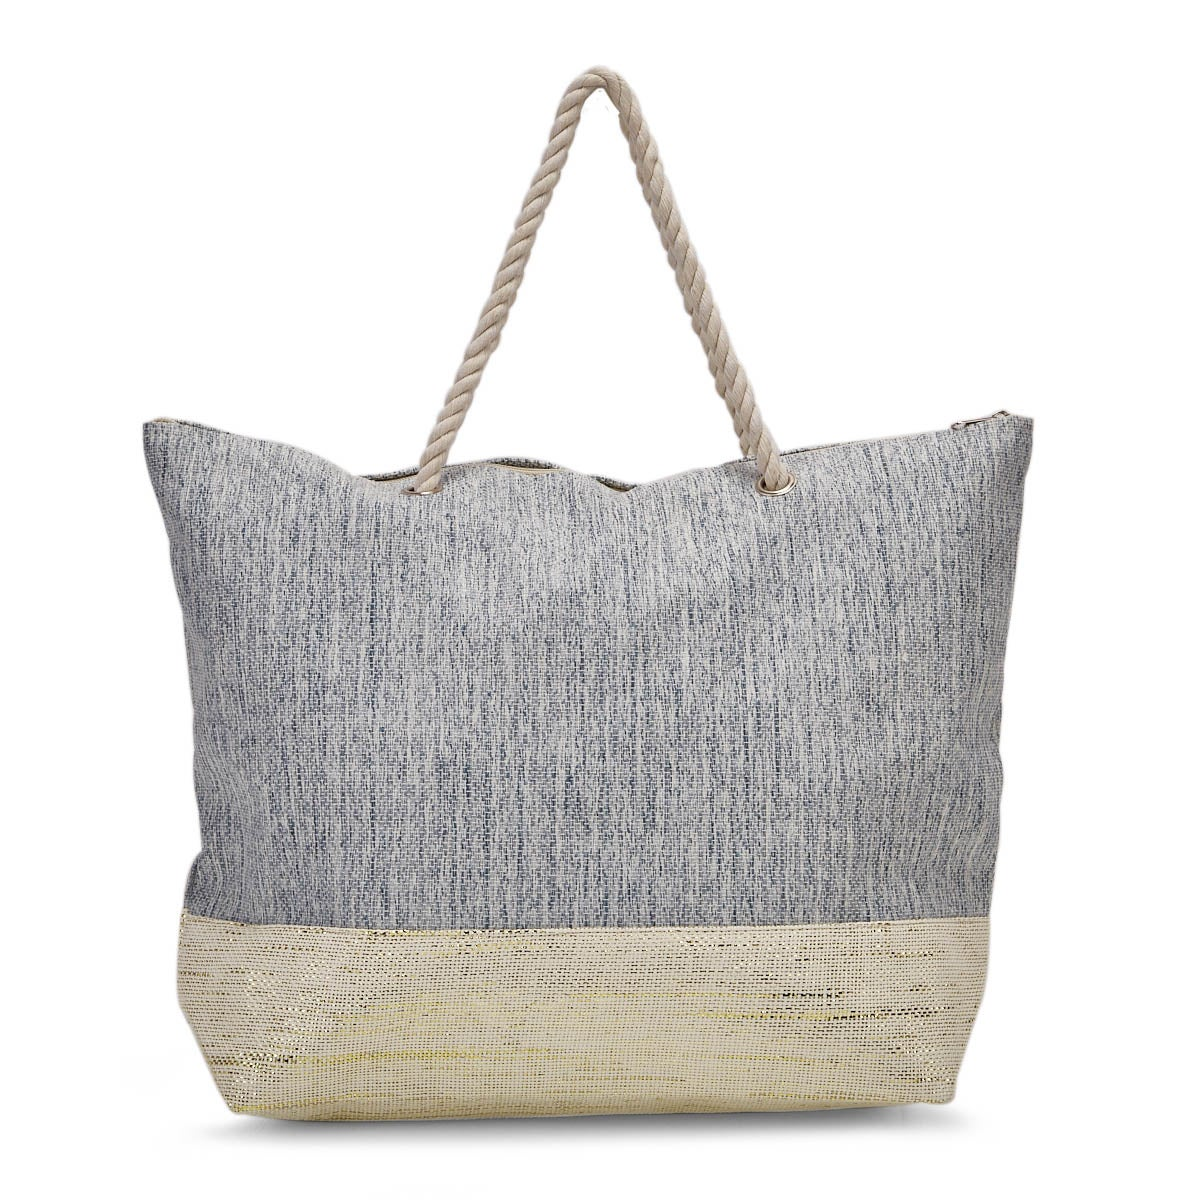 Lds denim beach large tote hand bag